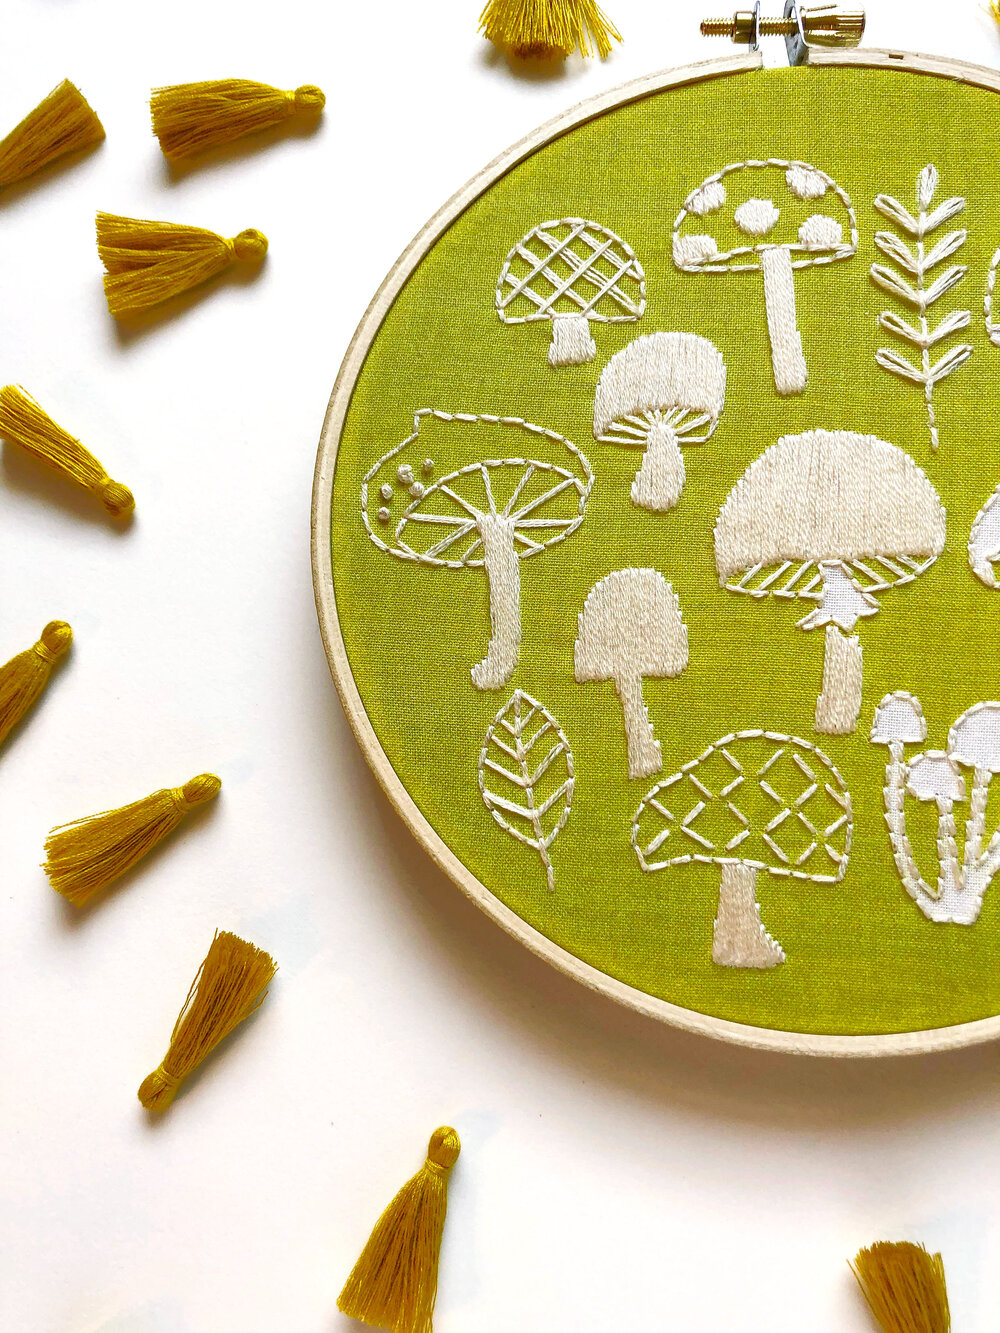 gift for her DIY craft mushroom embroidery kit beginner hoop art nature embroidery kits mushroom embroidery diy kit Mothers Day IP169